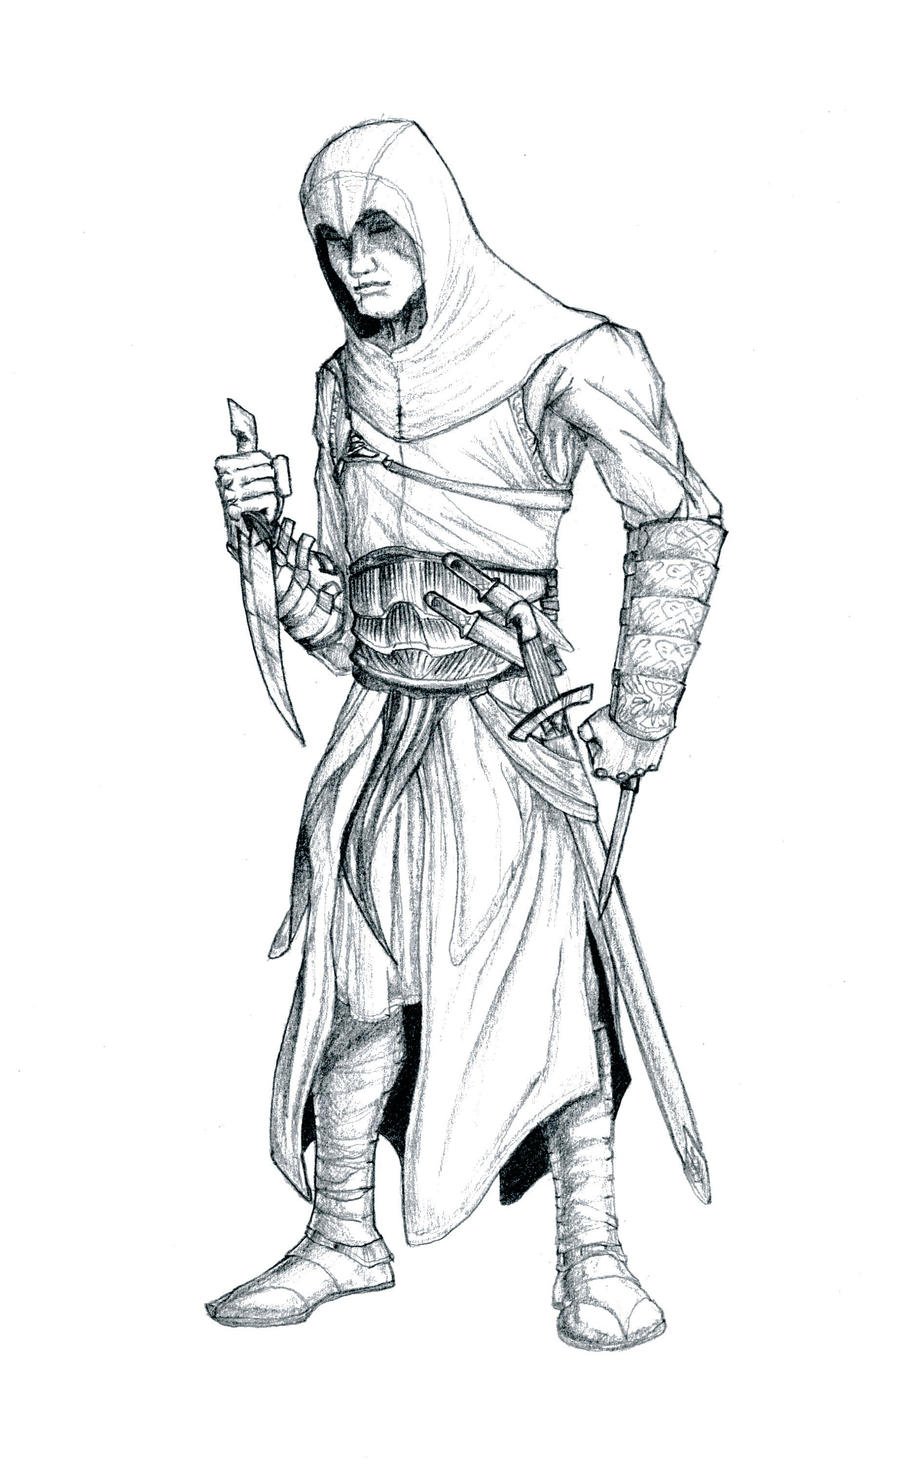 Uncategorized How To Draw Altair altair by music energy on deviantart energy